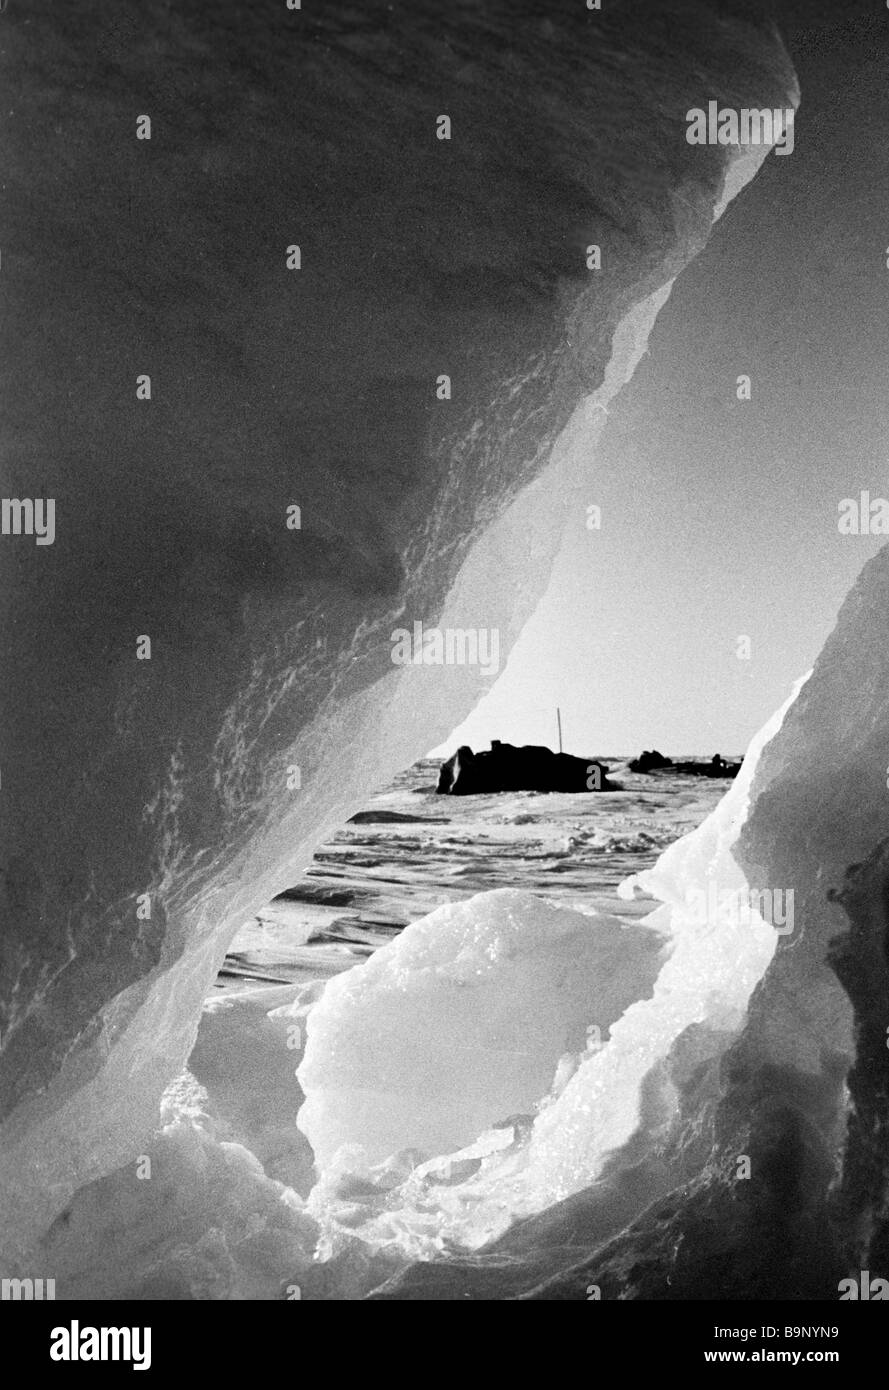 North Pole 14 drifting station - Stock Image